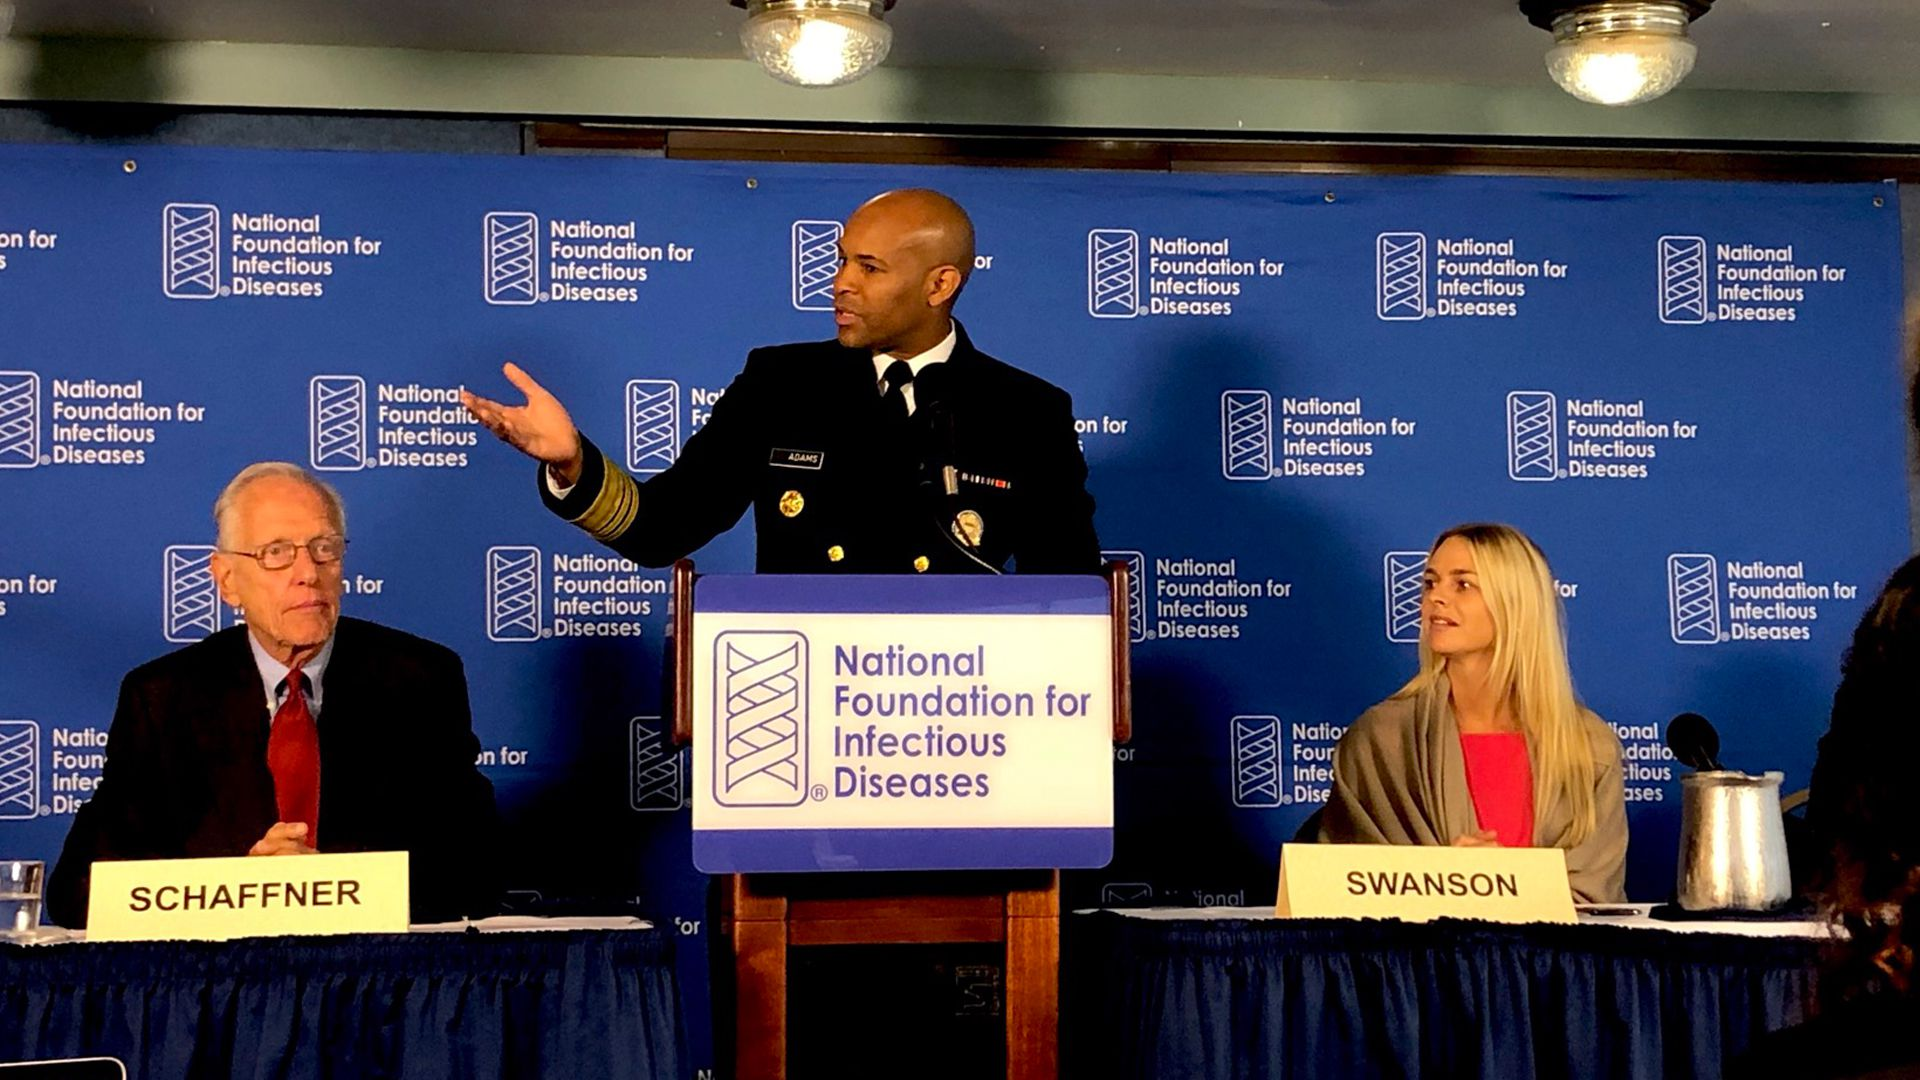 Photo of U.S. Surgeon General Jerome Adams speaking at podium about flu vaccine